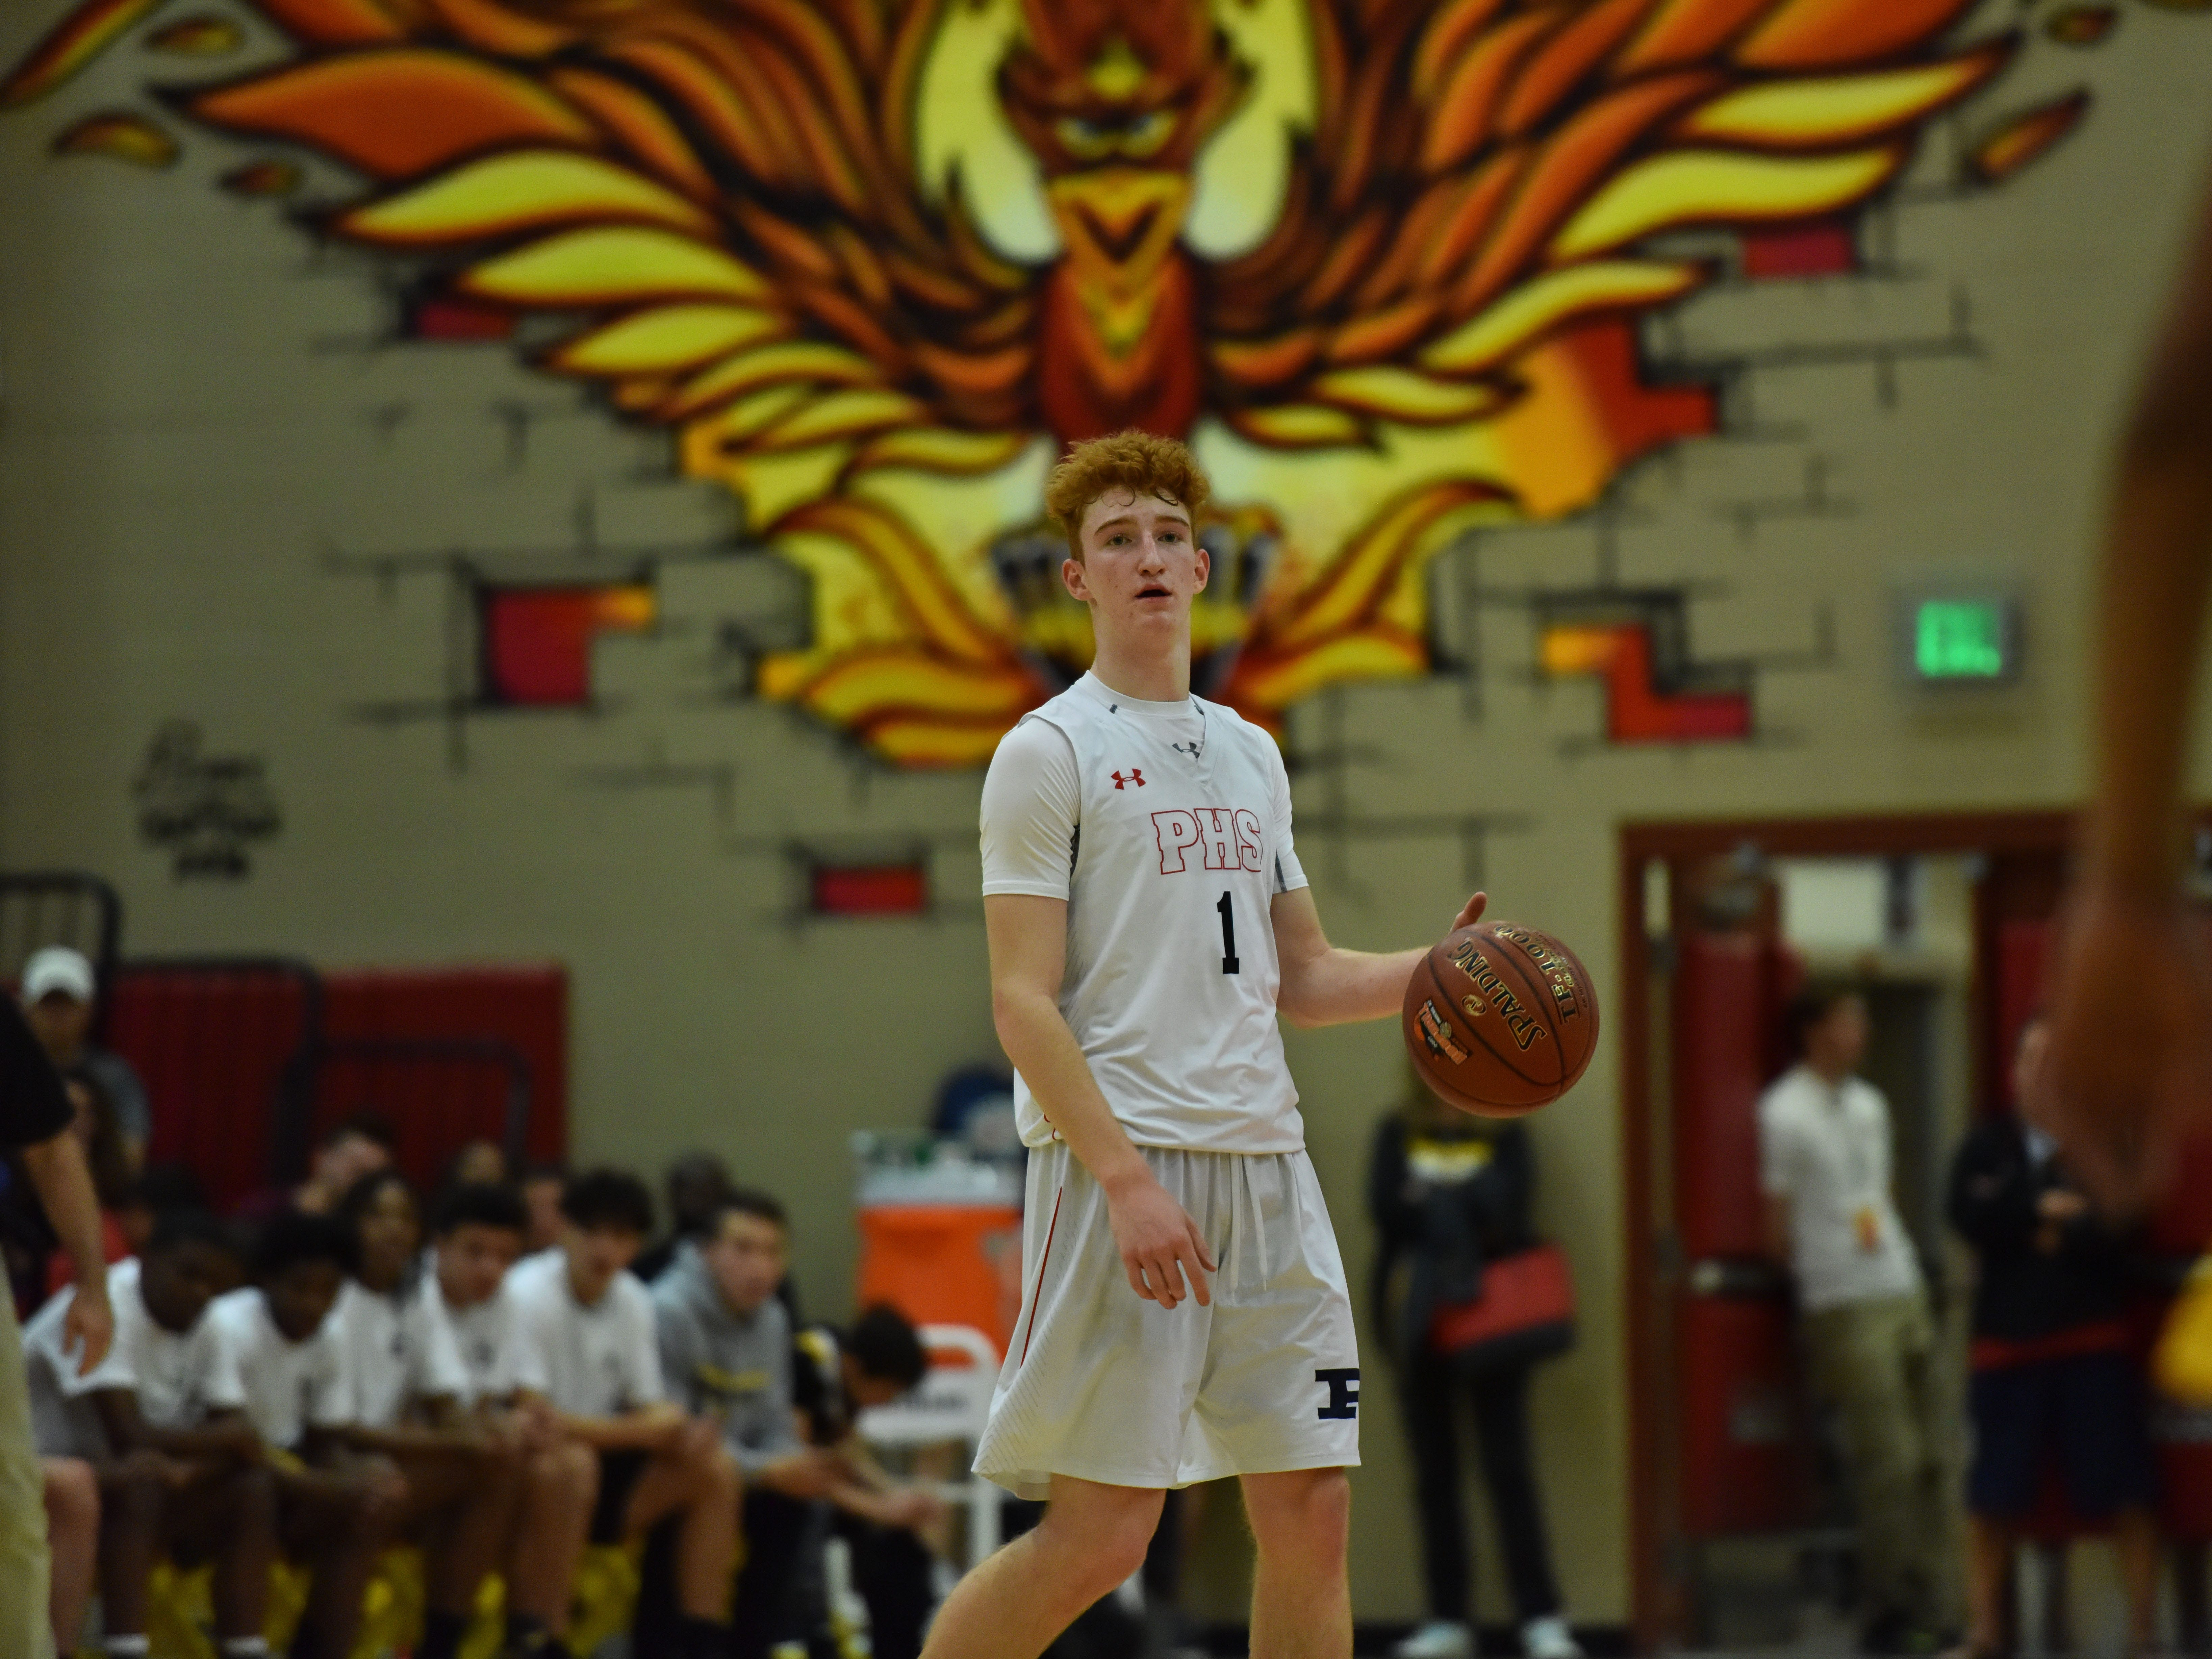 Hoophall West is a basketball showcase of the best local and national talent at Scottsdale's Chaparral High School.